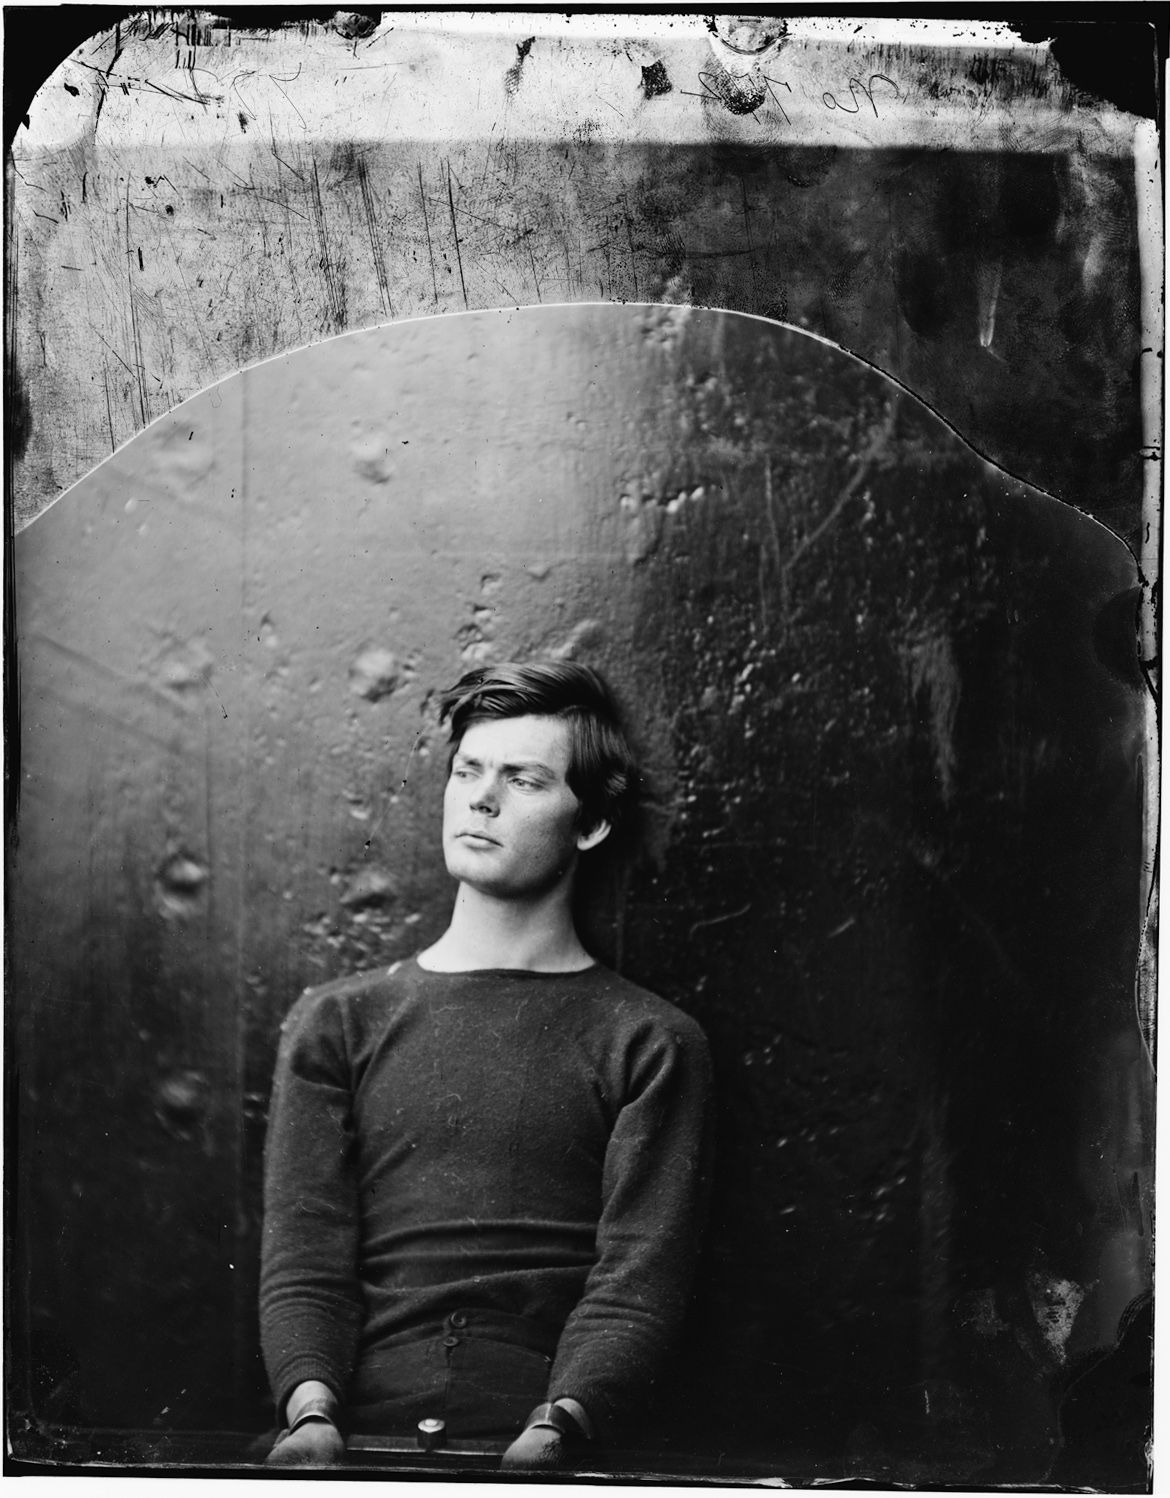 lewis thornton powell photographed by alexander gardner, april 1865.